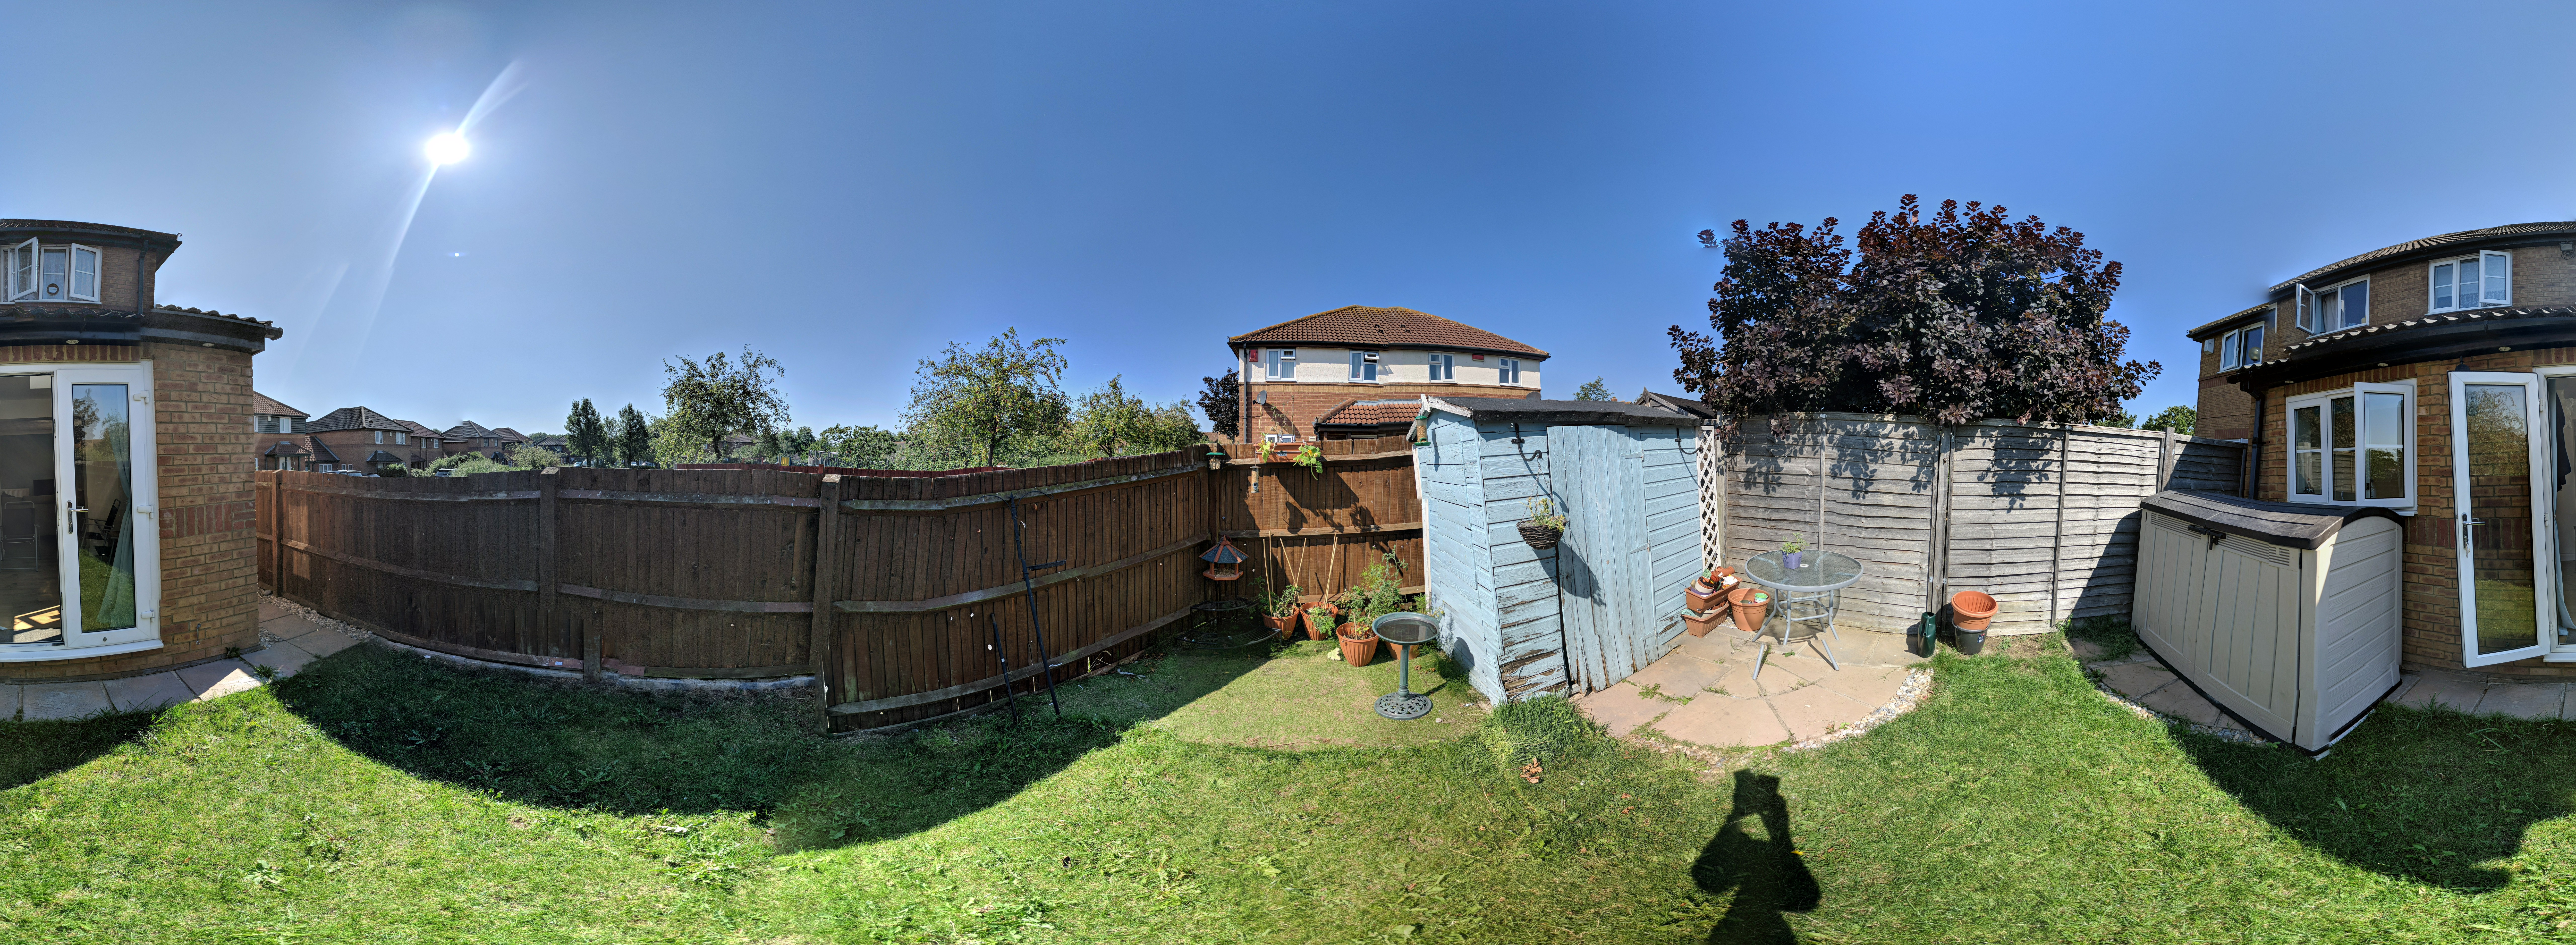 my little garden pano